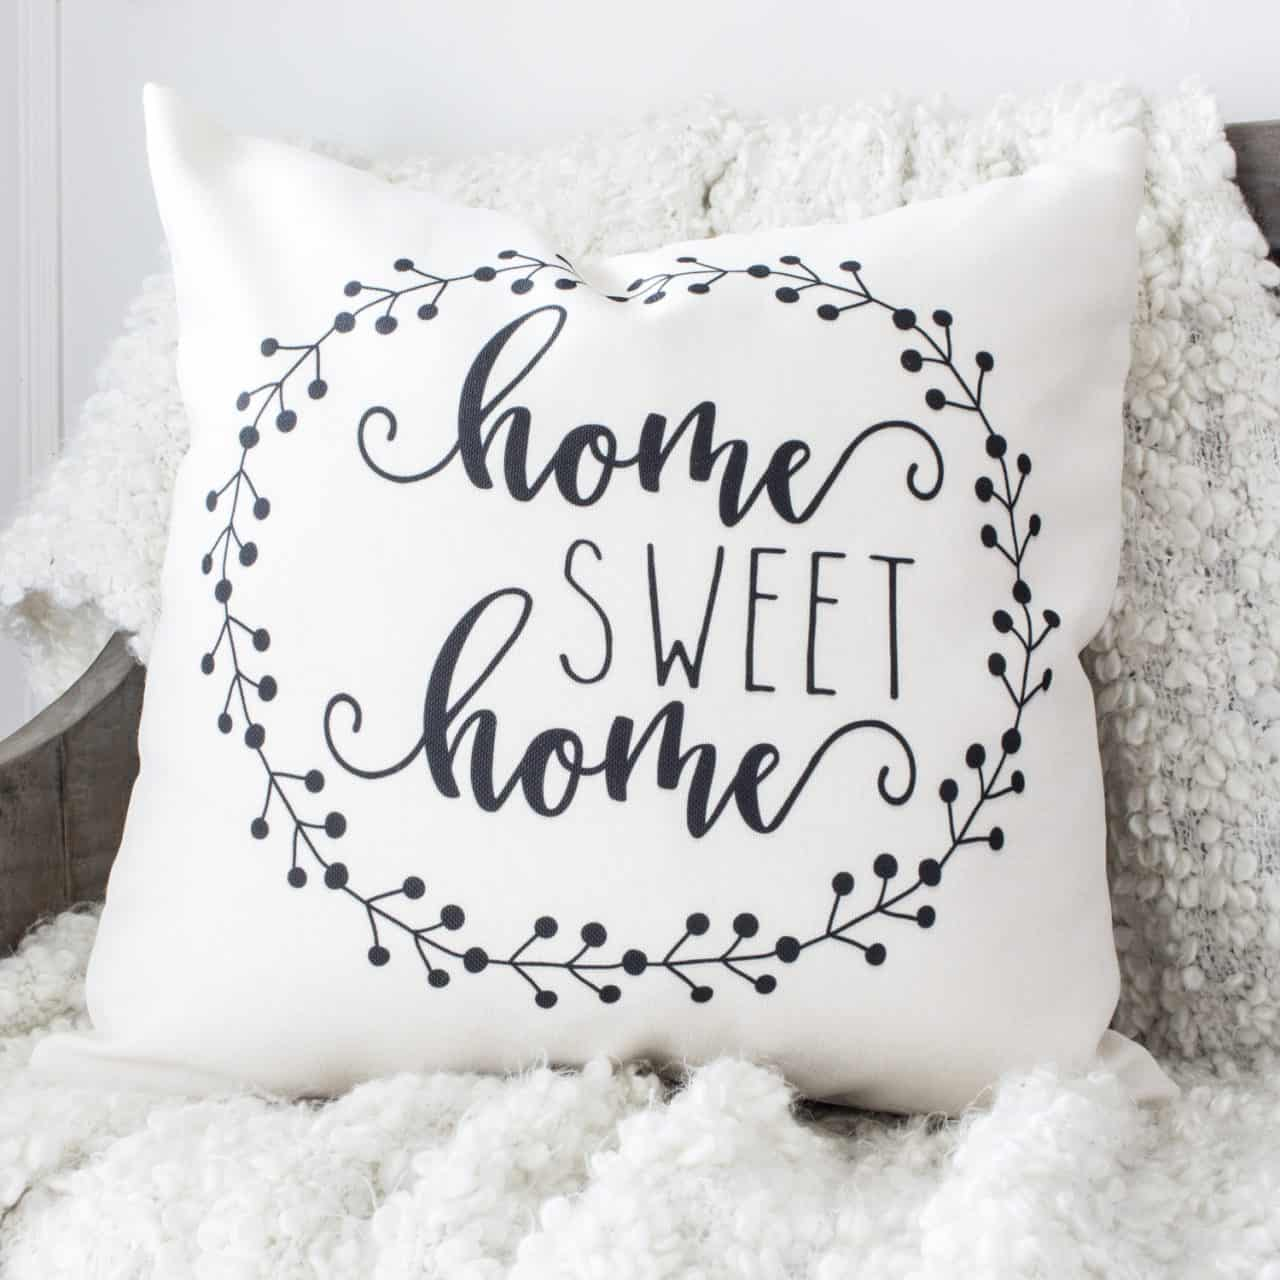 photo relating to Home Sweet Home Printable identify Down load This Free of charge Household Adorable Property Chalkboard Printable Listed here Presently